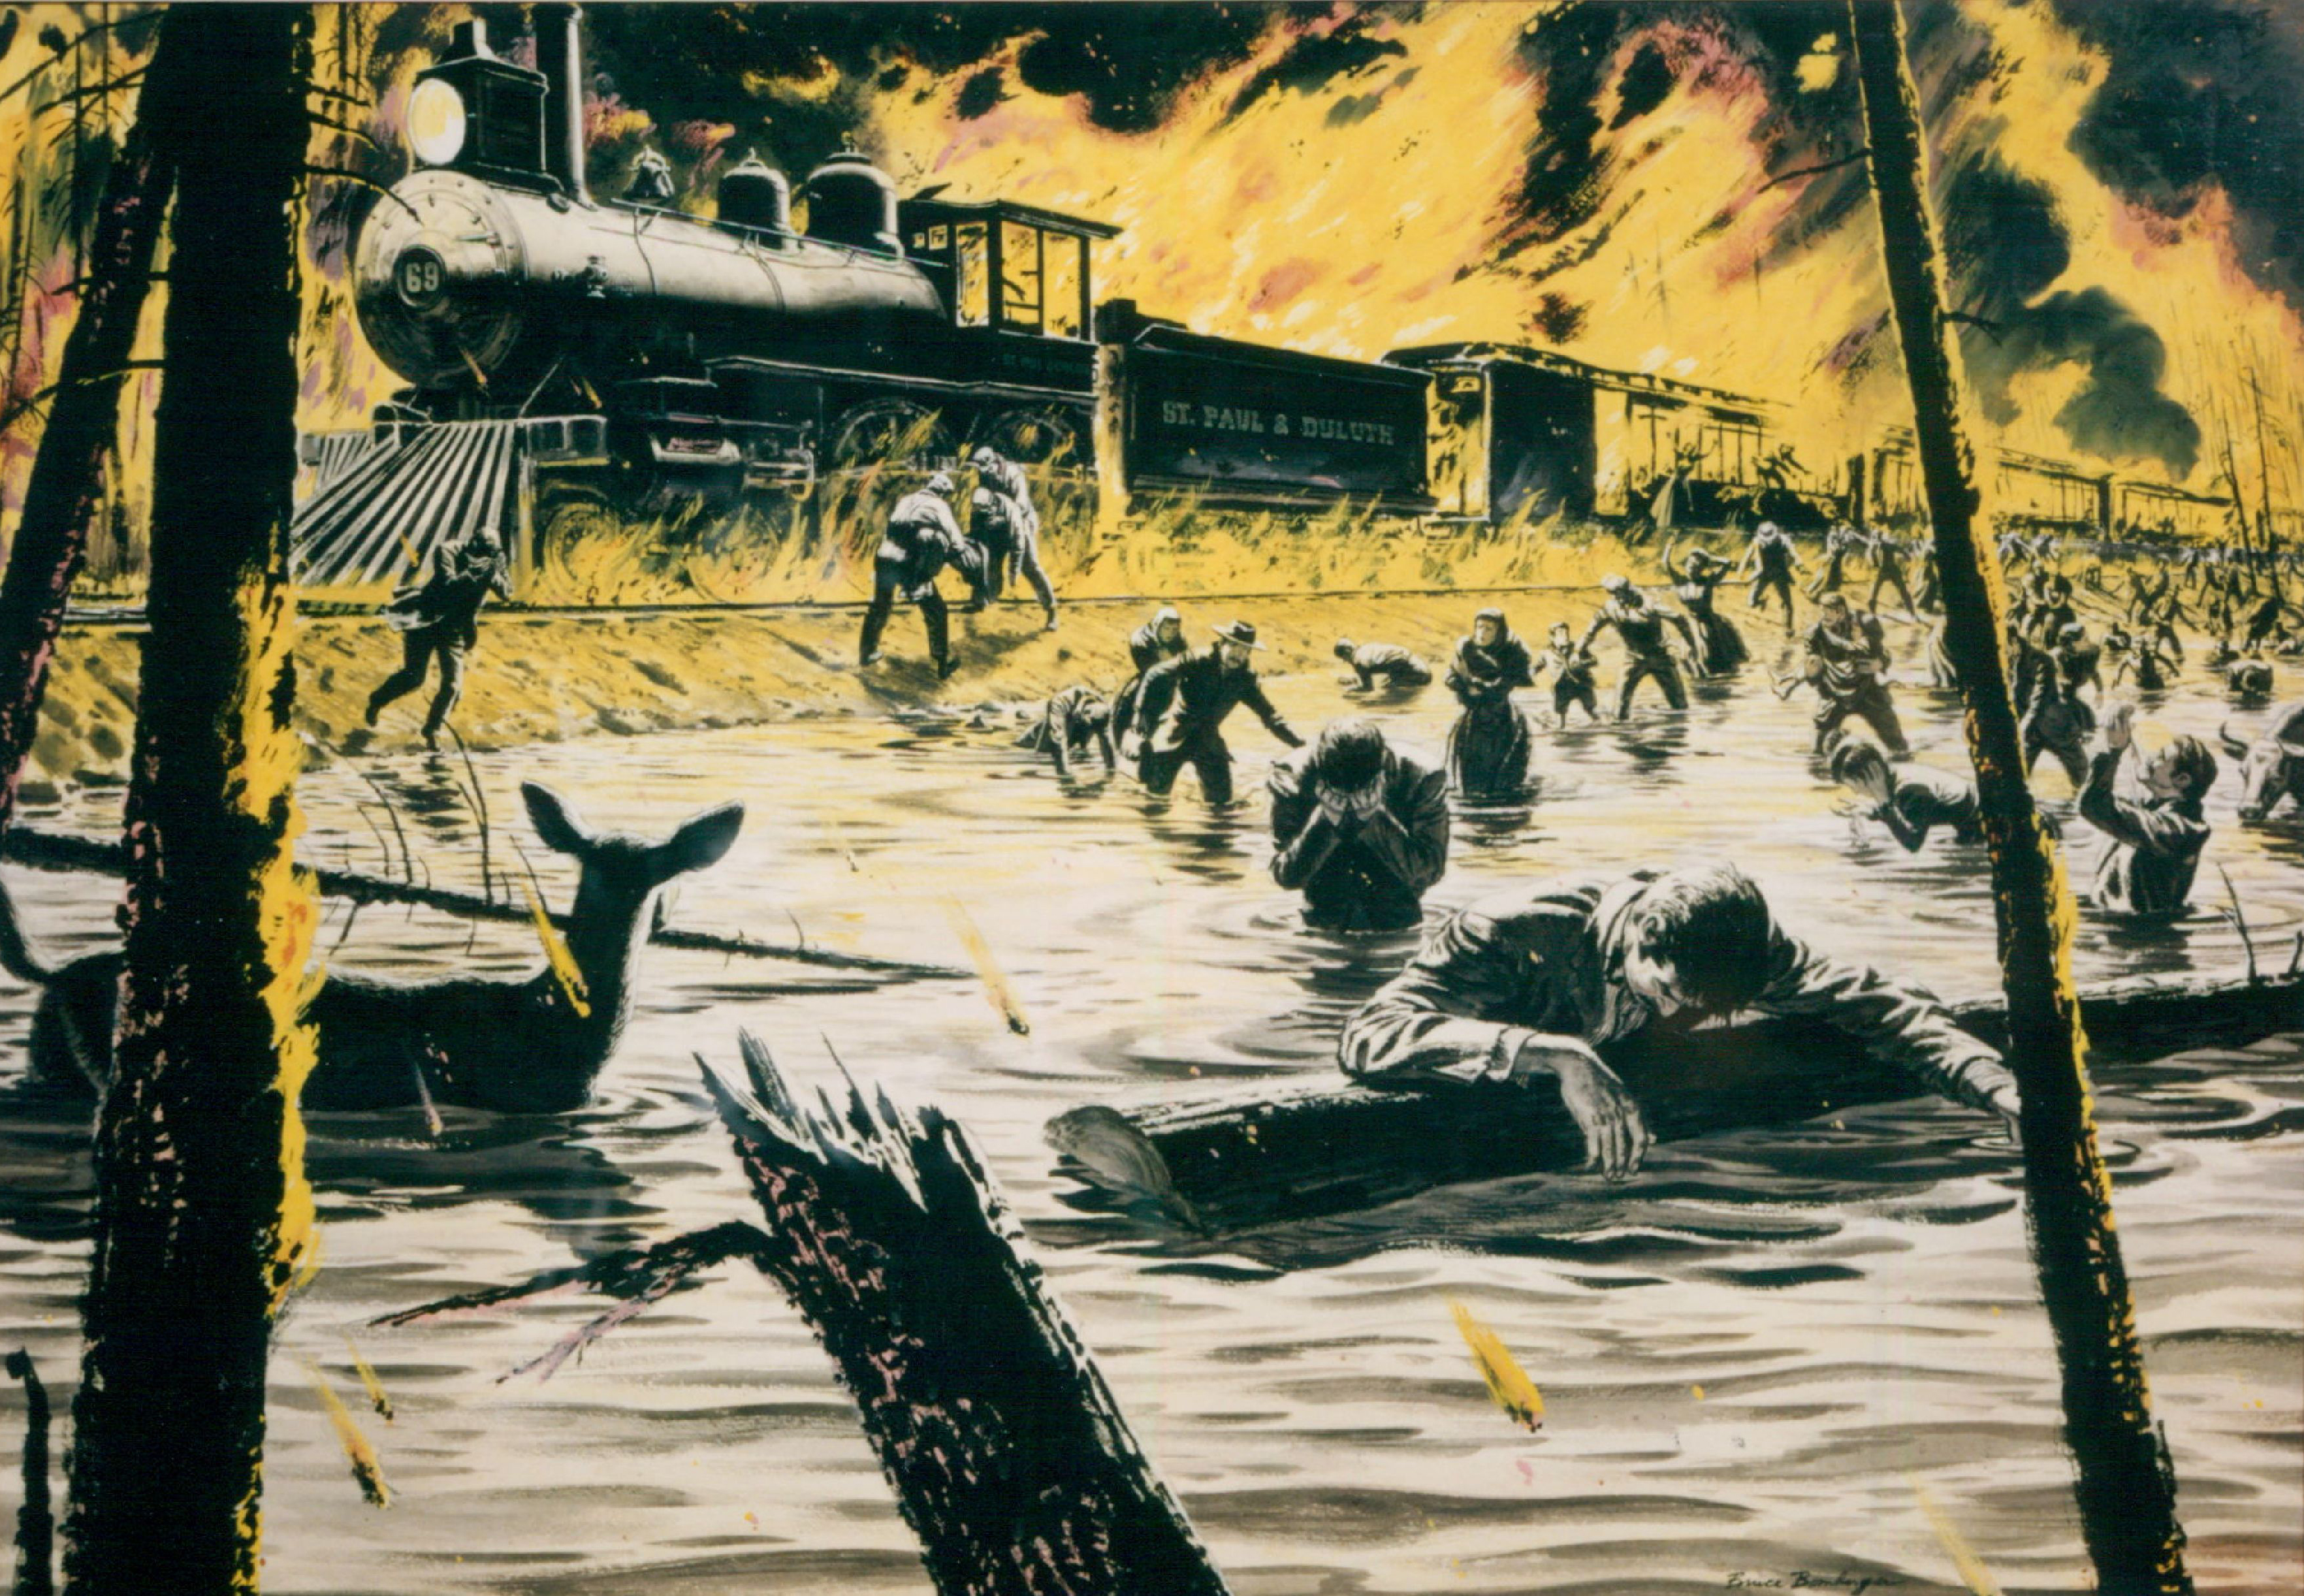 This illustration of the 1918 fires, painted in 1950 for 'True Magazine,' depicts people escaping from a burning train.